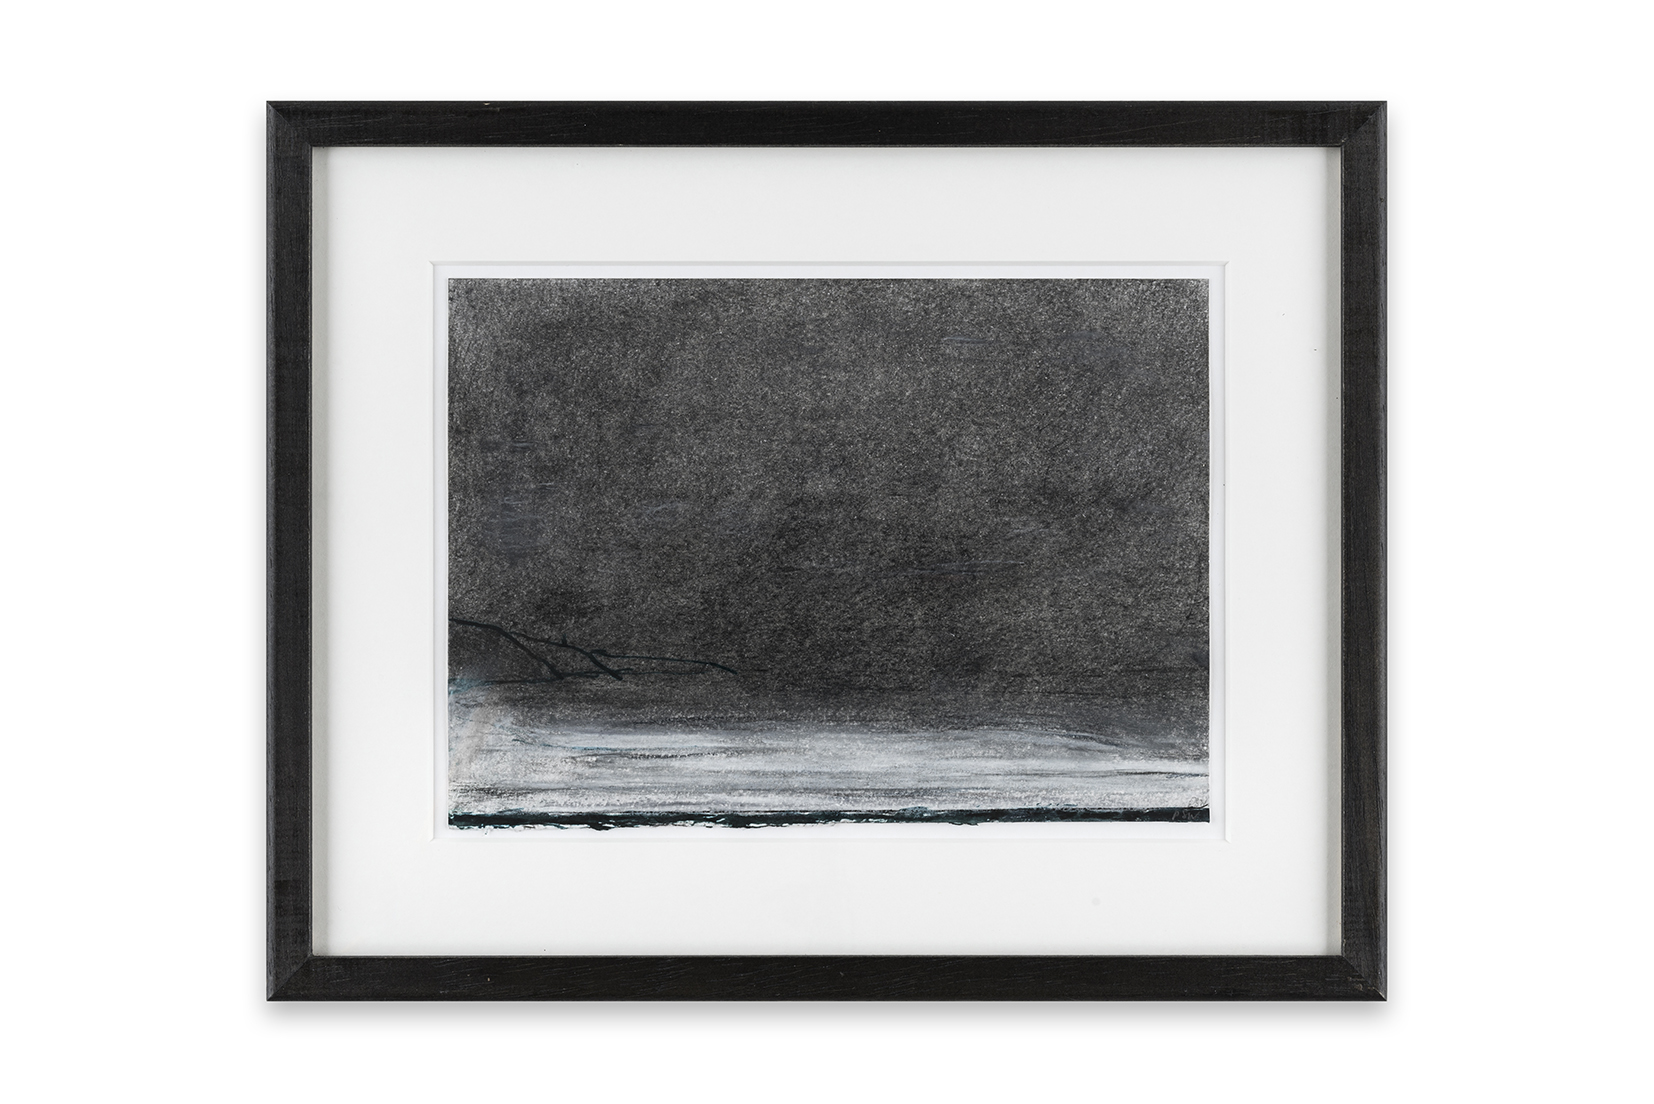 7 Storm Surge, Time and Tide series, 15 x 21 cm, ink and charcoal on paper